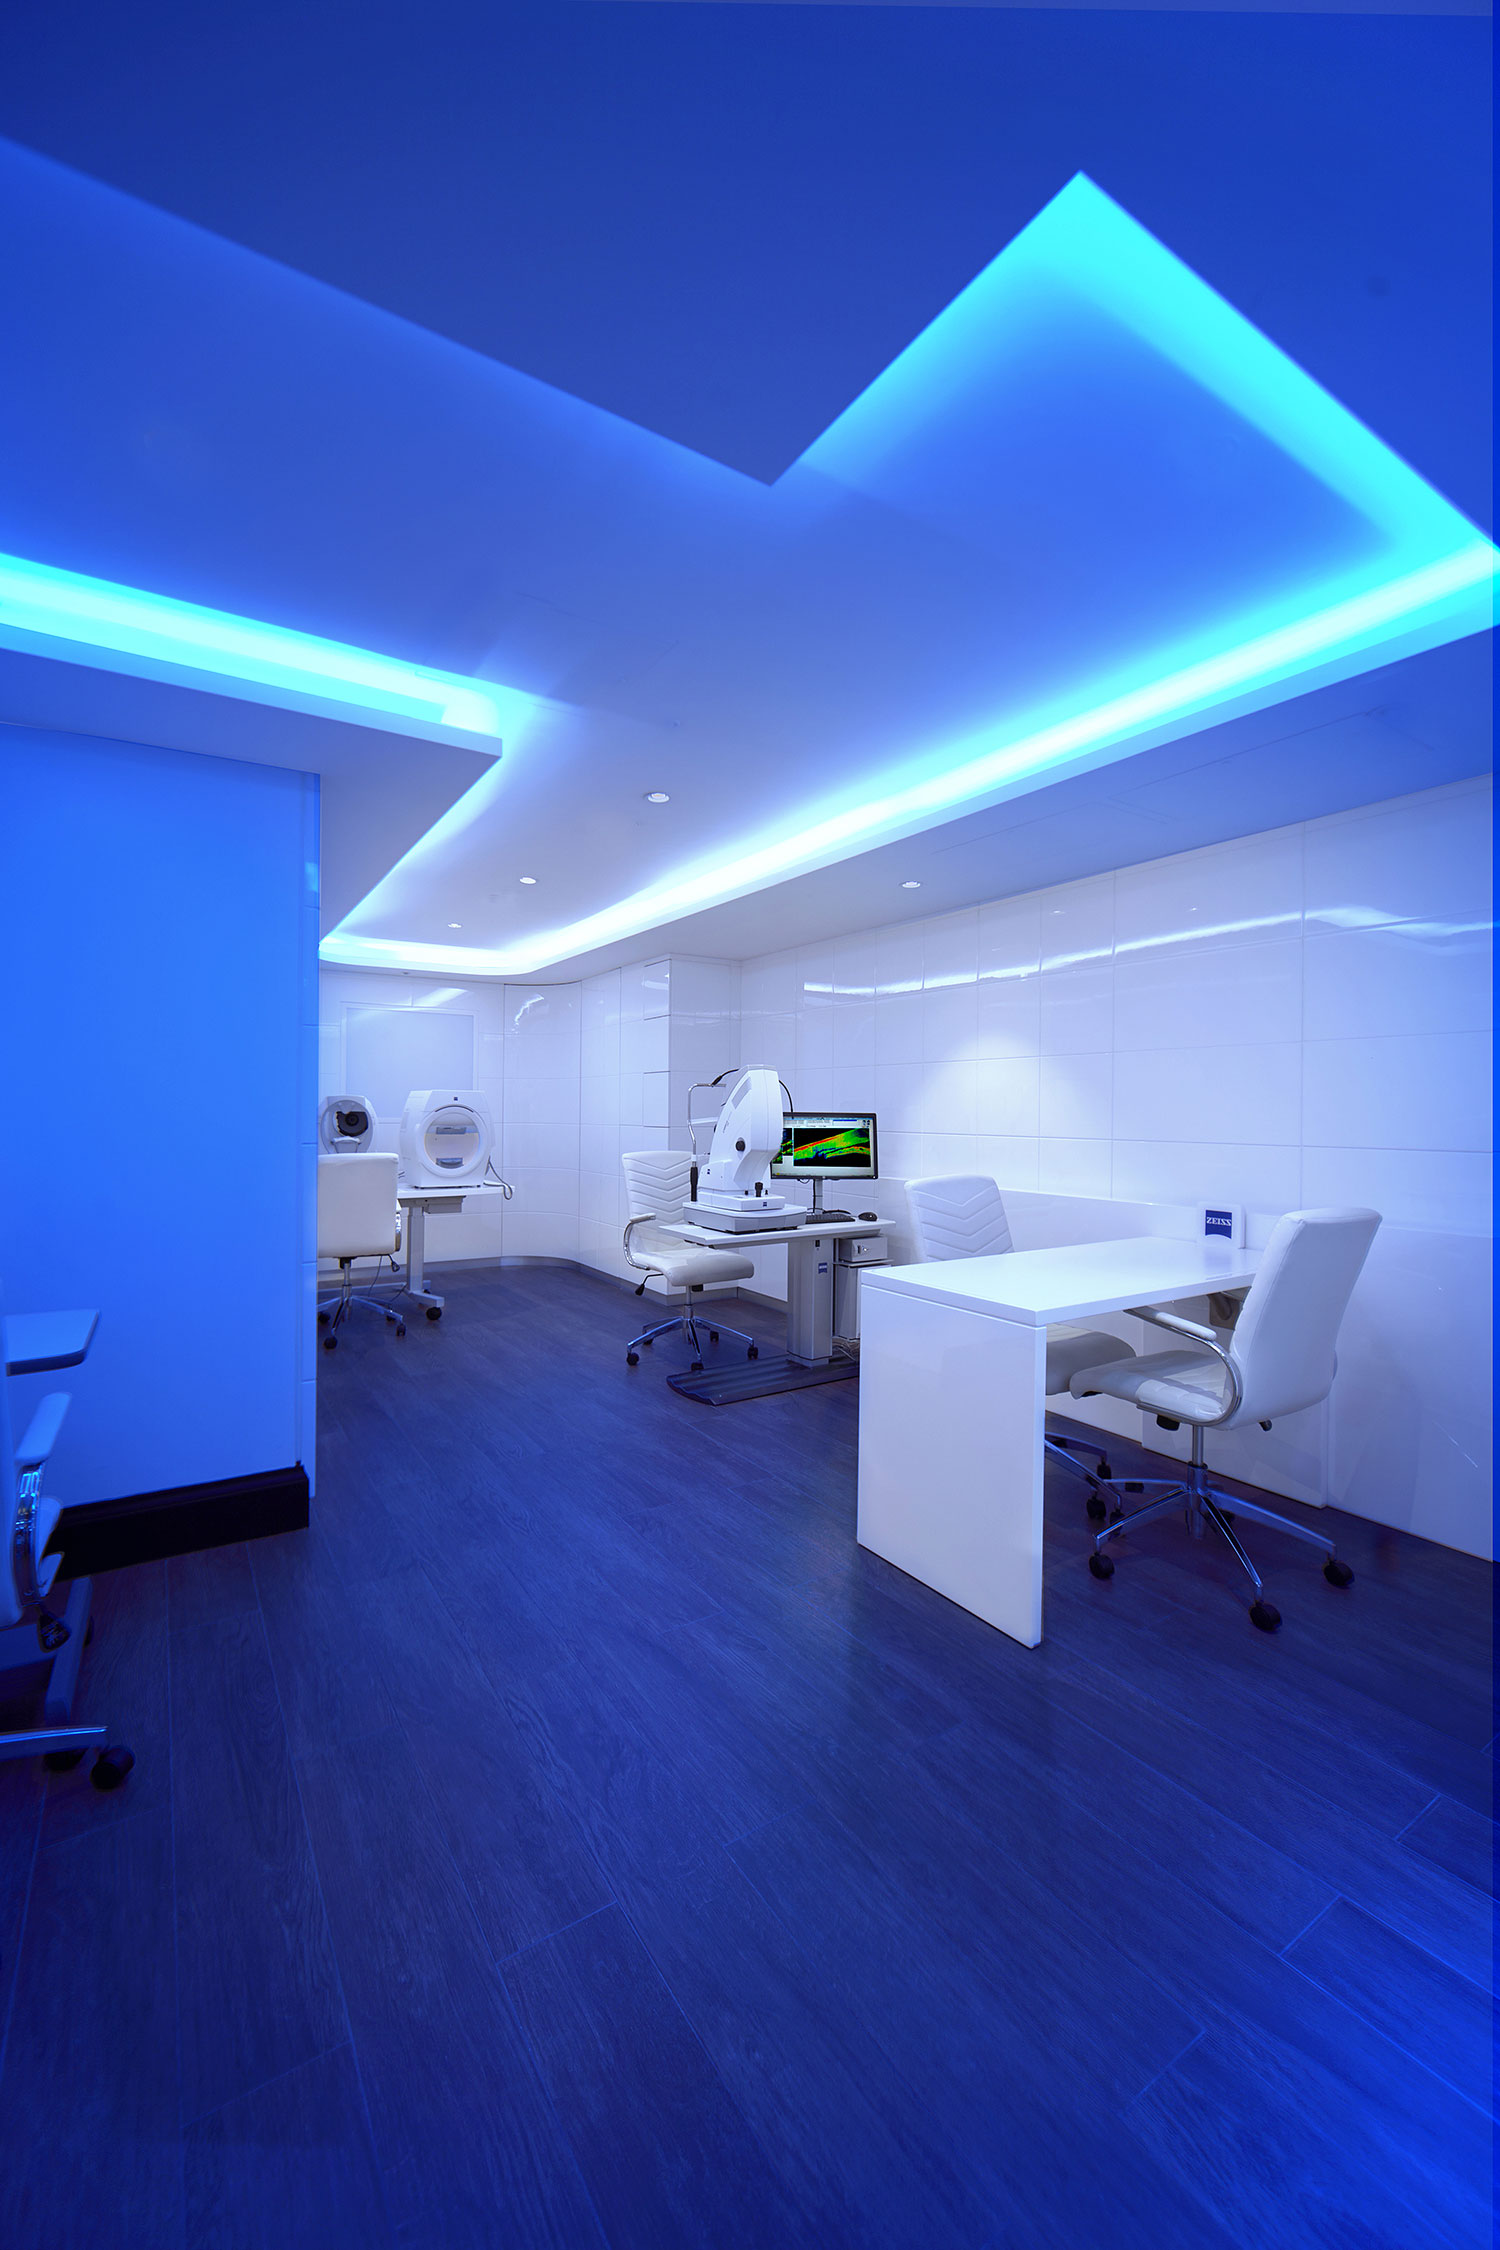 Vision clinic at Tom Davies Bespoke Opticians in blue light